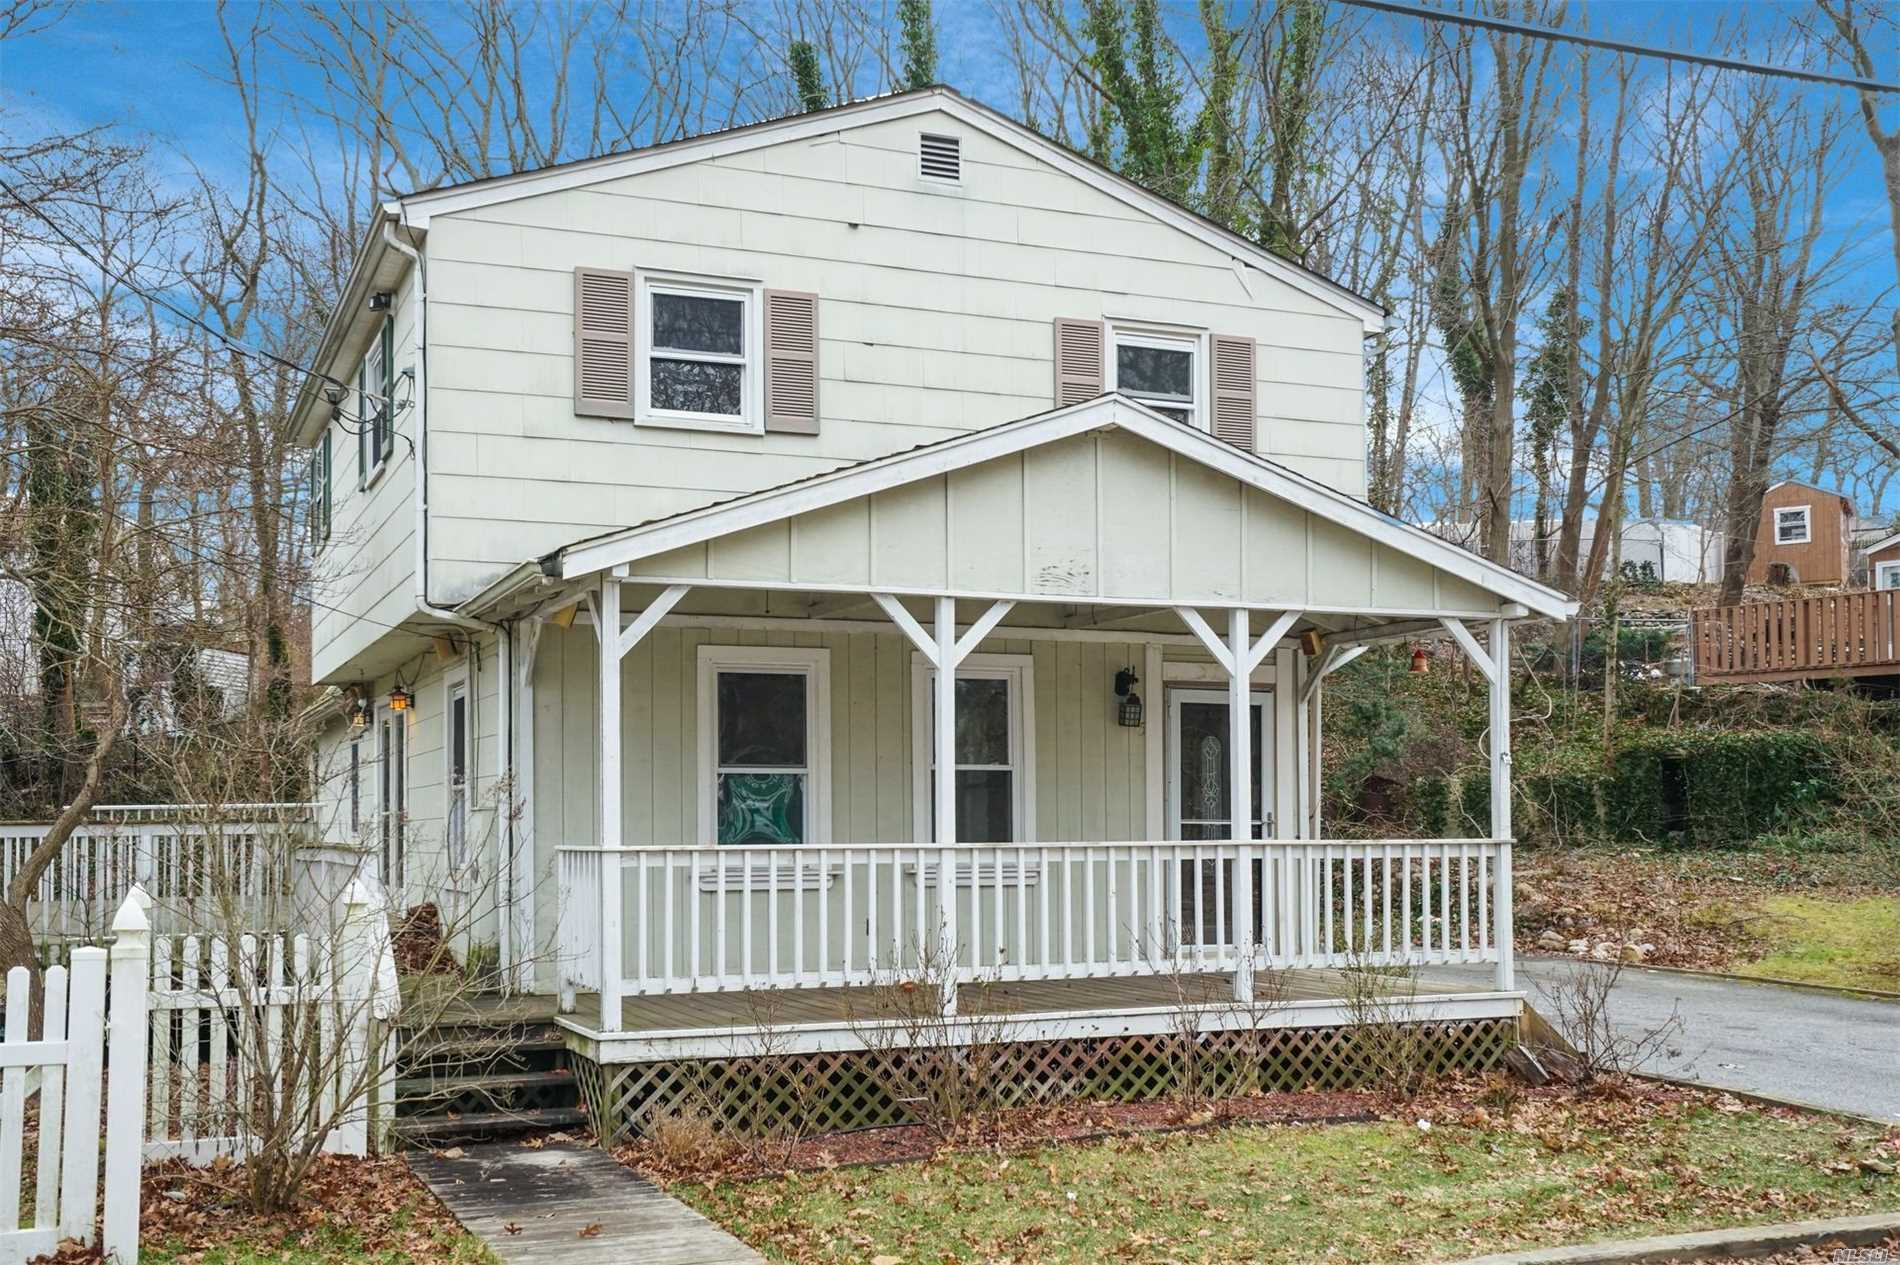 Rocking Chair Porch Overlooks Large Yard. Unique Colonial, Large Living Room W/Wood Stove, Granite Kitchen, New Baths, Newer Windows, Huge Deck, 200 Amp Electric. Short Walk To Private L. I. Sound Beach. Shed Is A Gift. Ready Now!